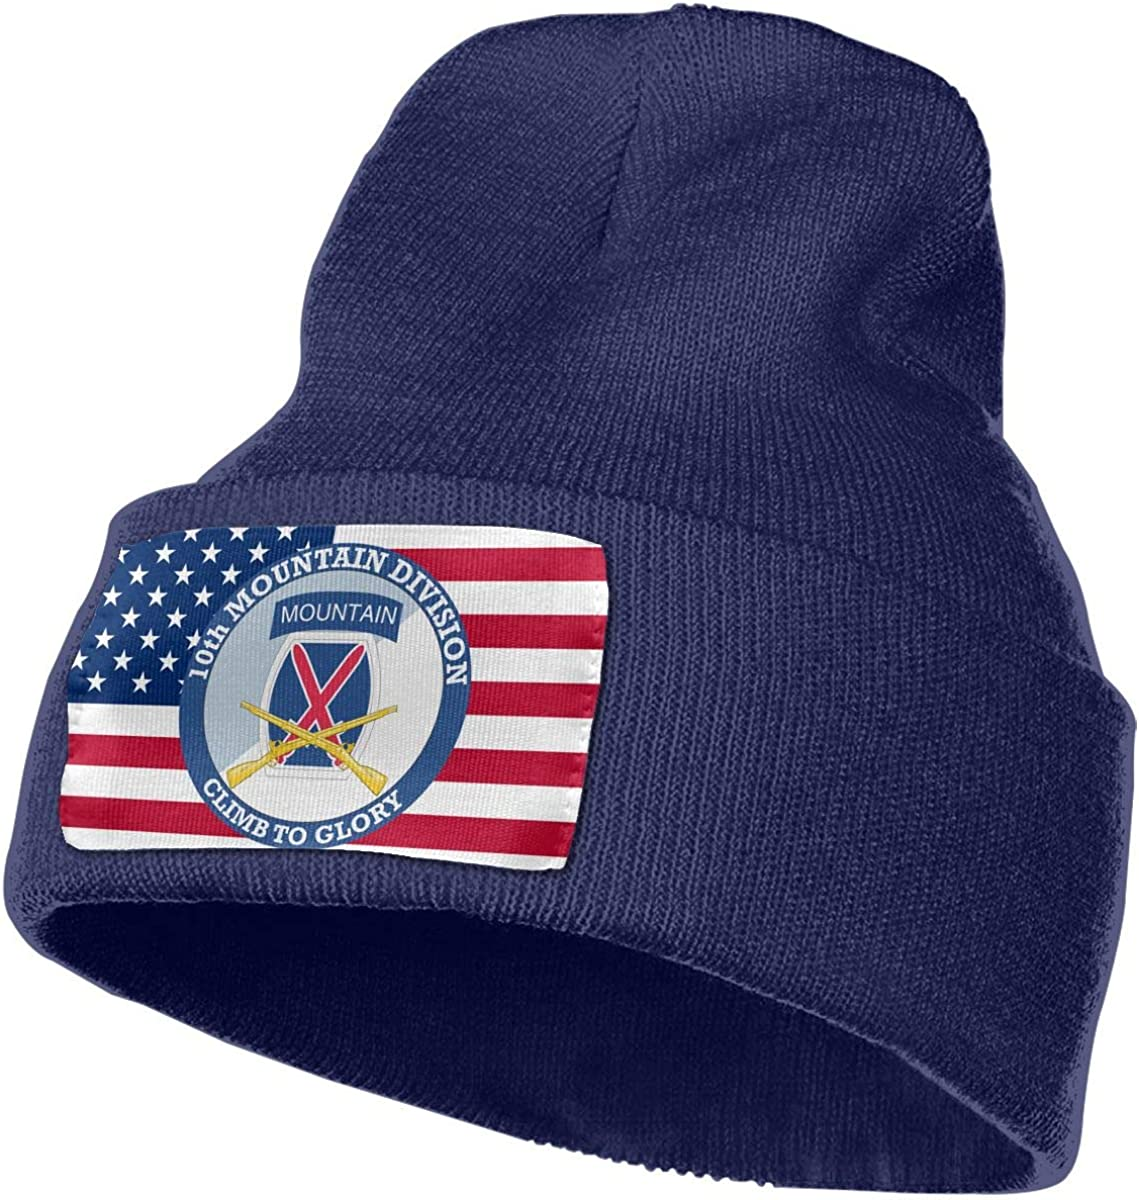 10th Mountain Division with Crossed Rifles Men/&Women Warm Winter Knit Plain Beanie Hat Skull Cap Acrylic Knit Cuff Hat